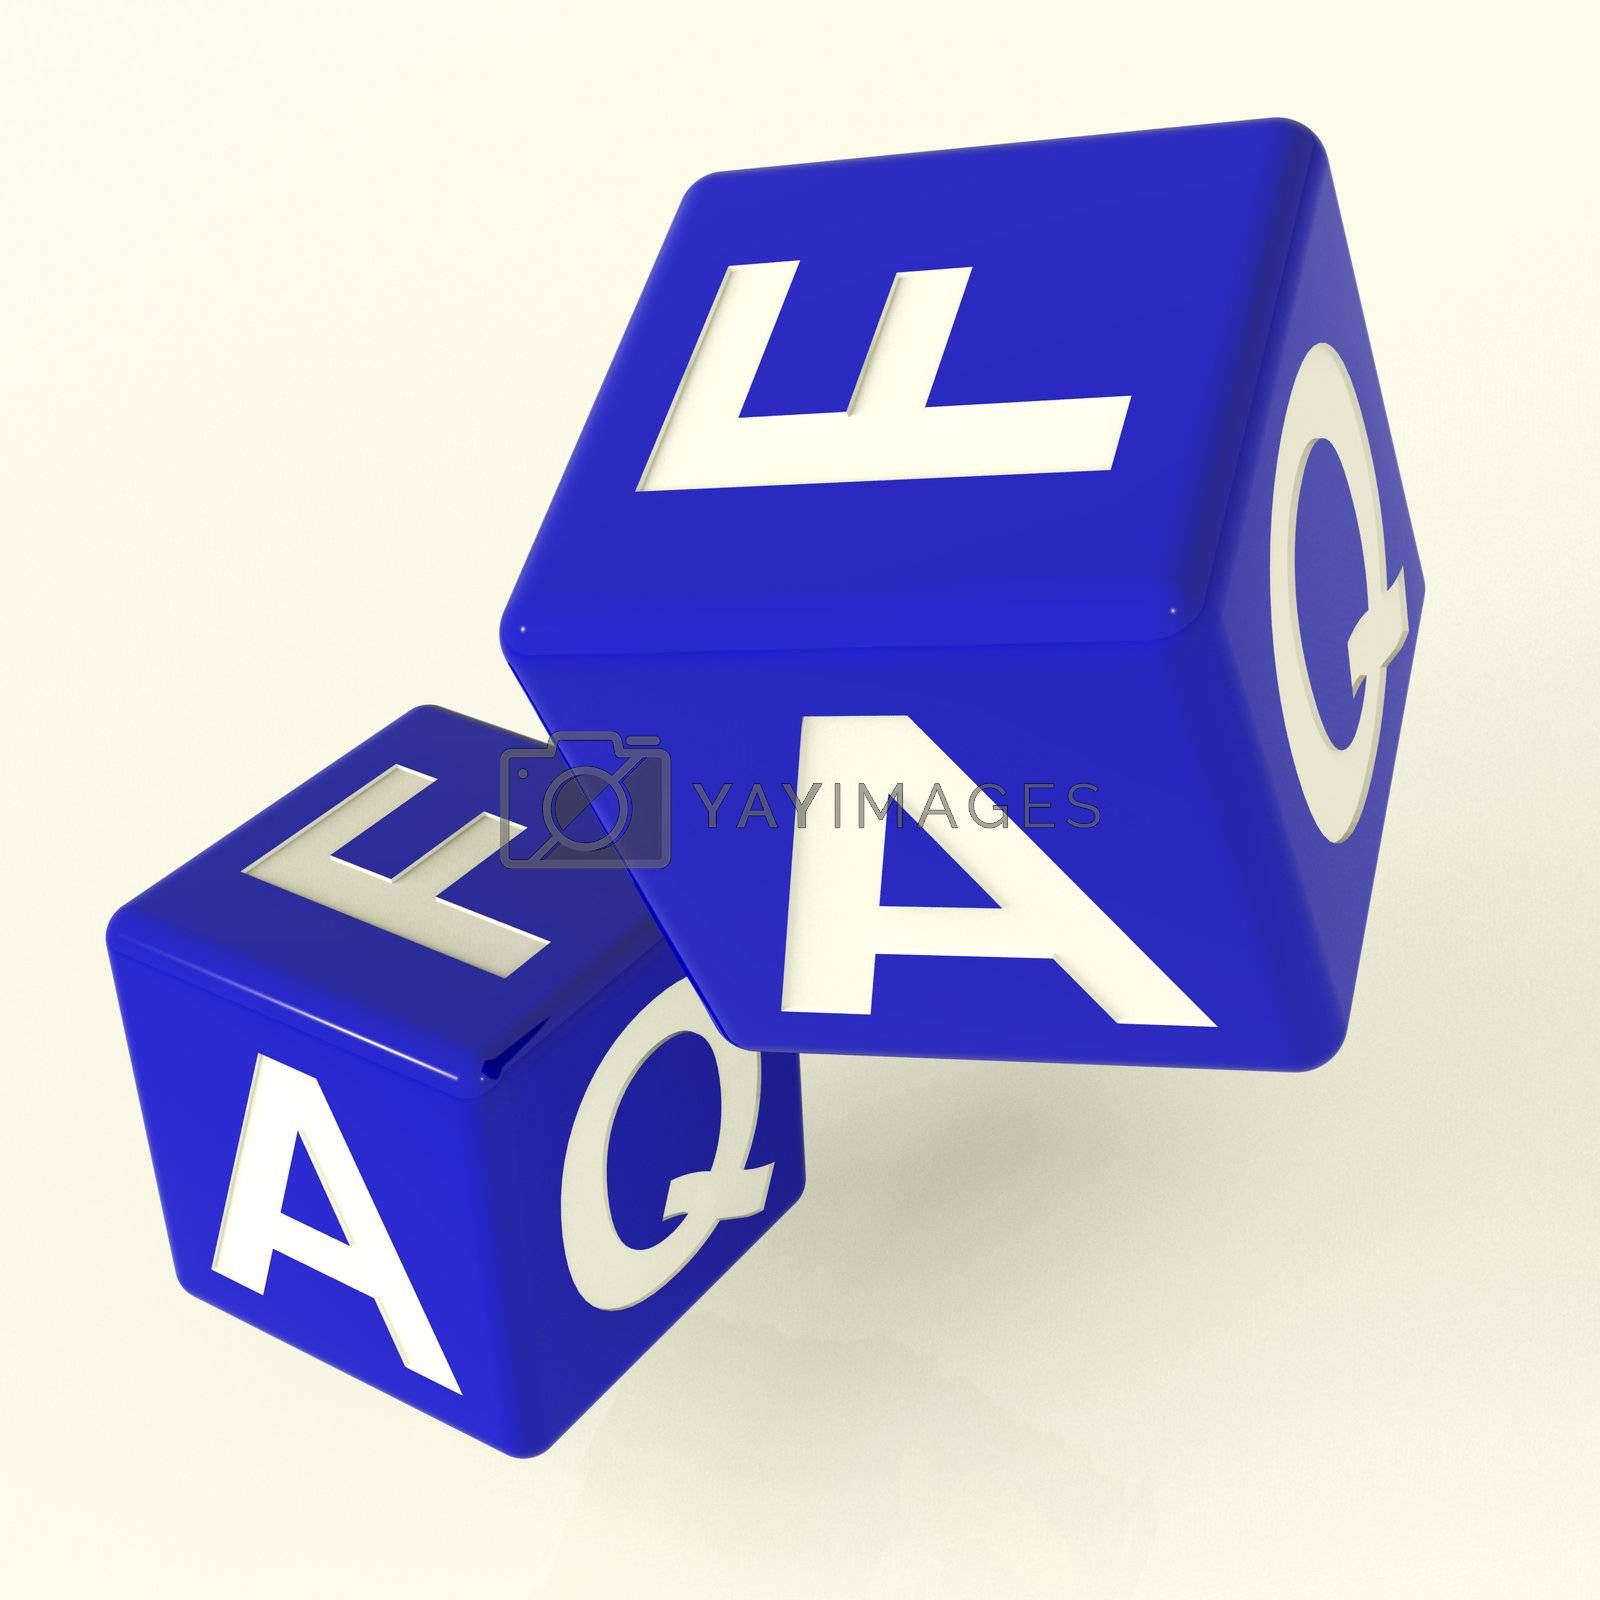 Faq Blue Dice As Symbol For Information Or Answers